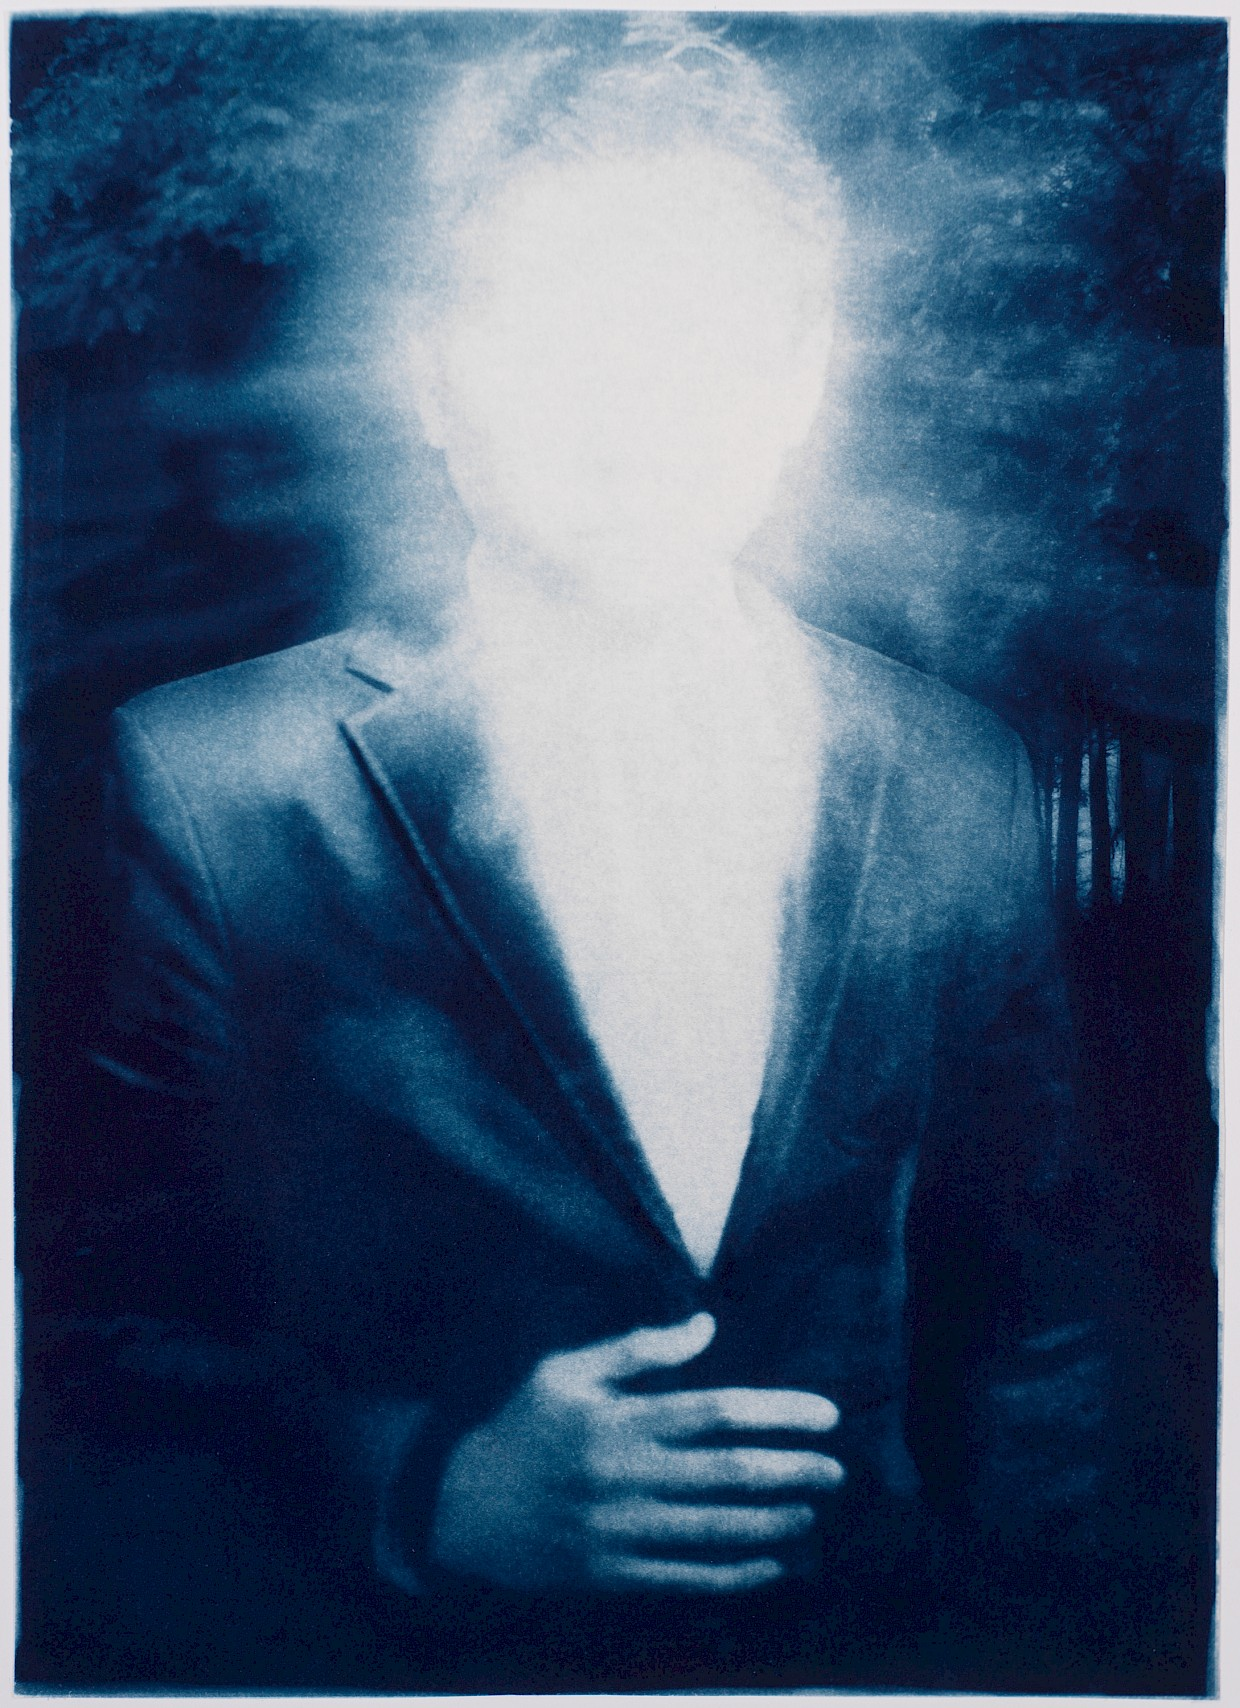 man in business suit with light emanating from his face suggesting enlightenment